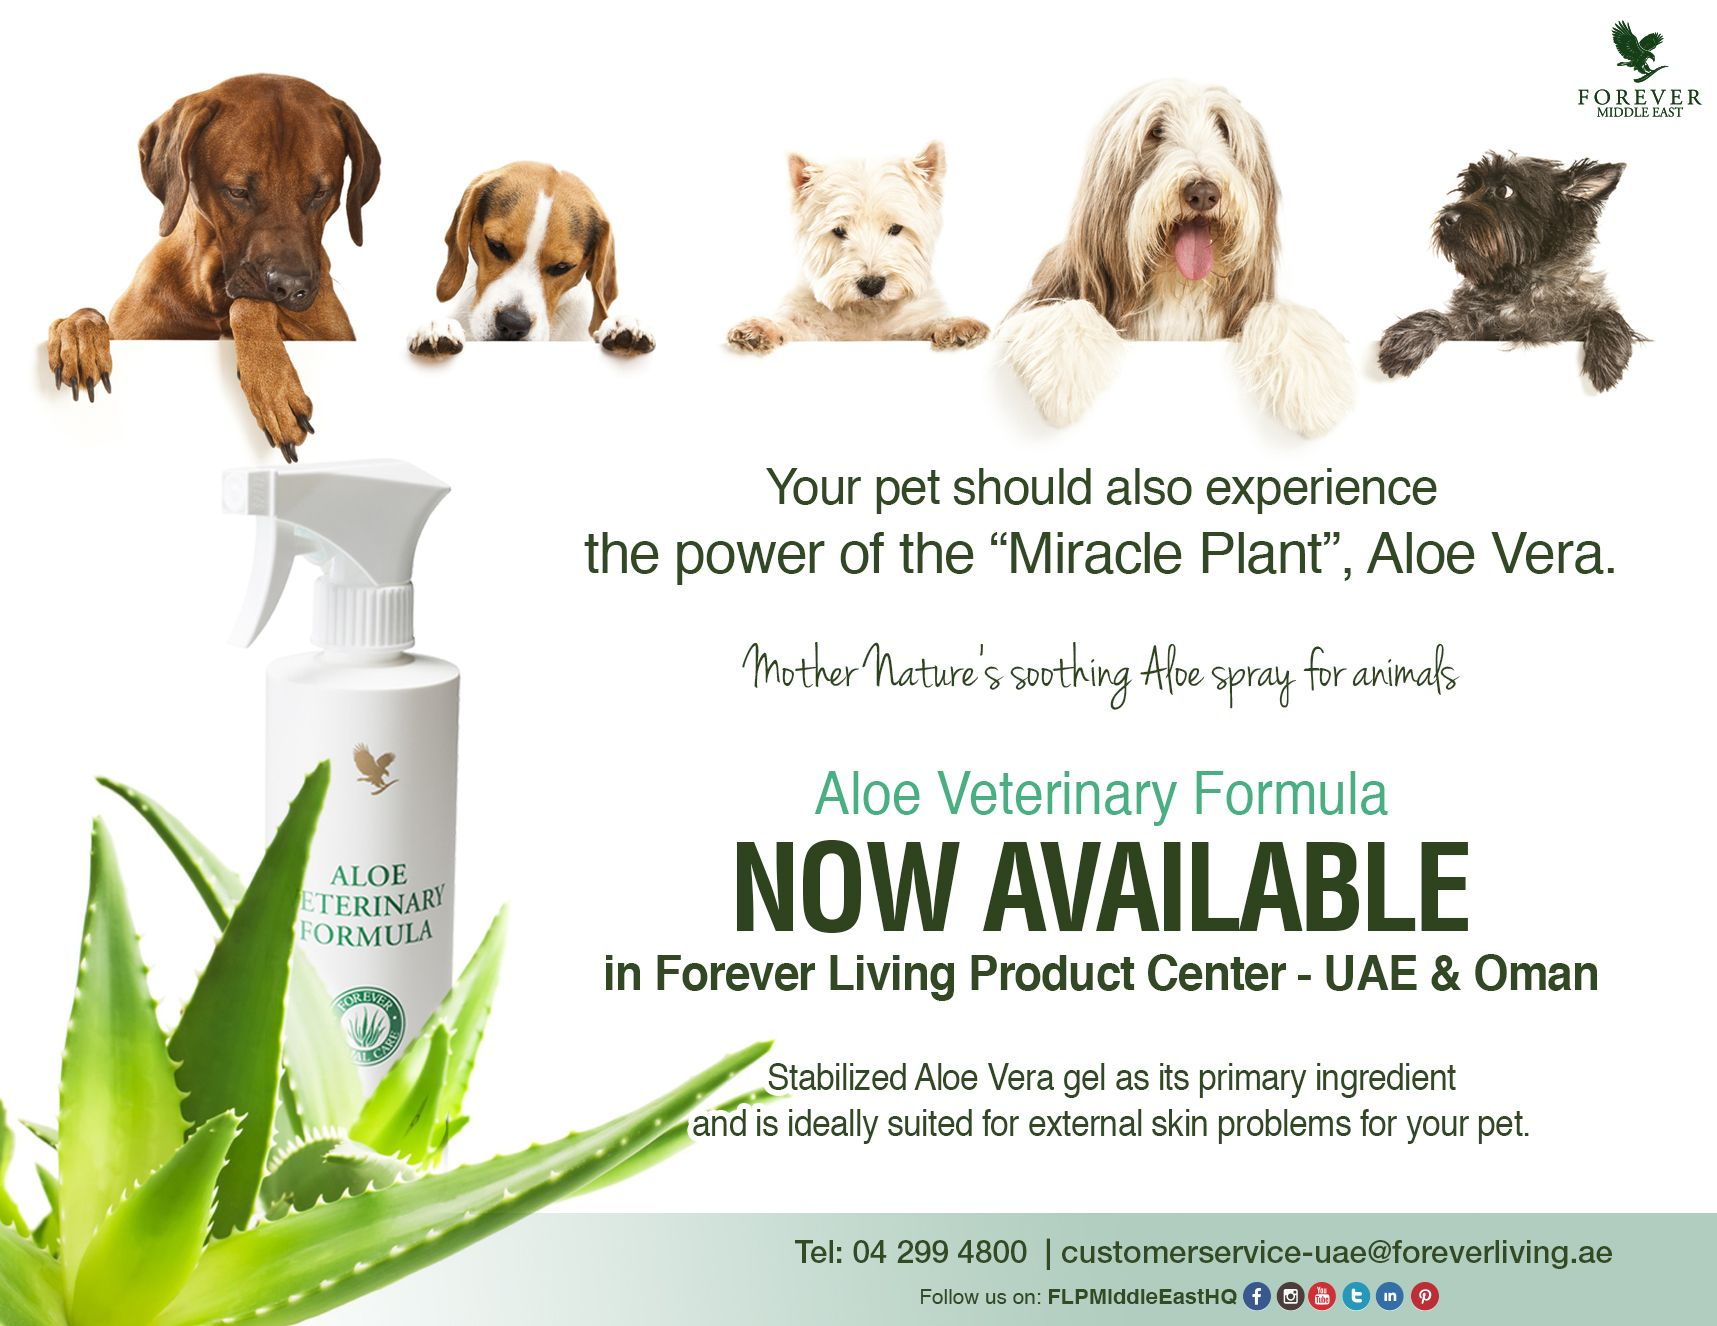 Aloe Veterinary Formula NOW Available in Forever Living